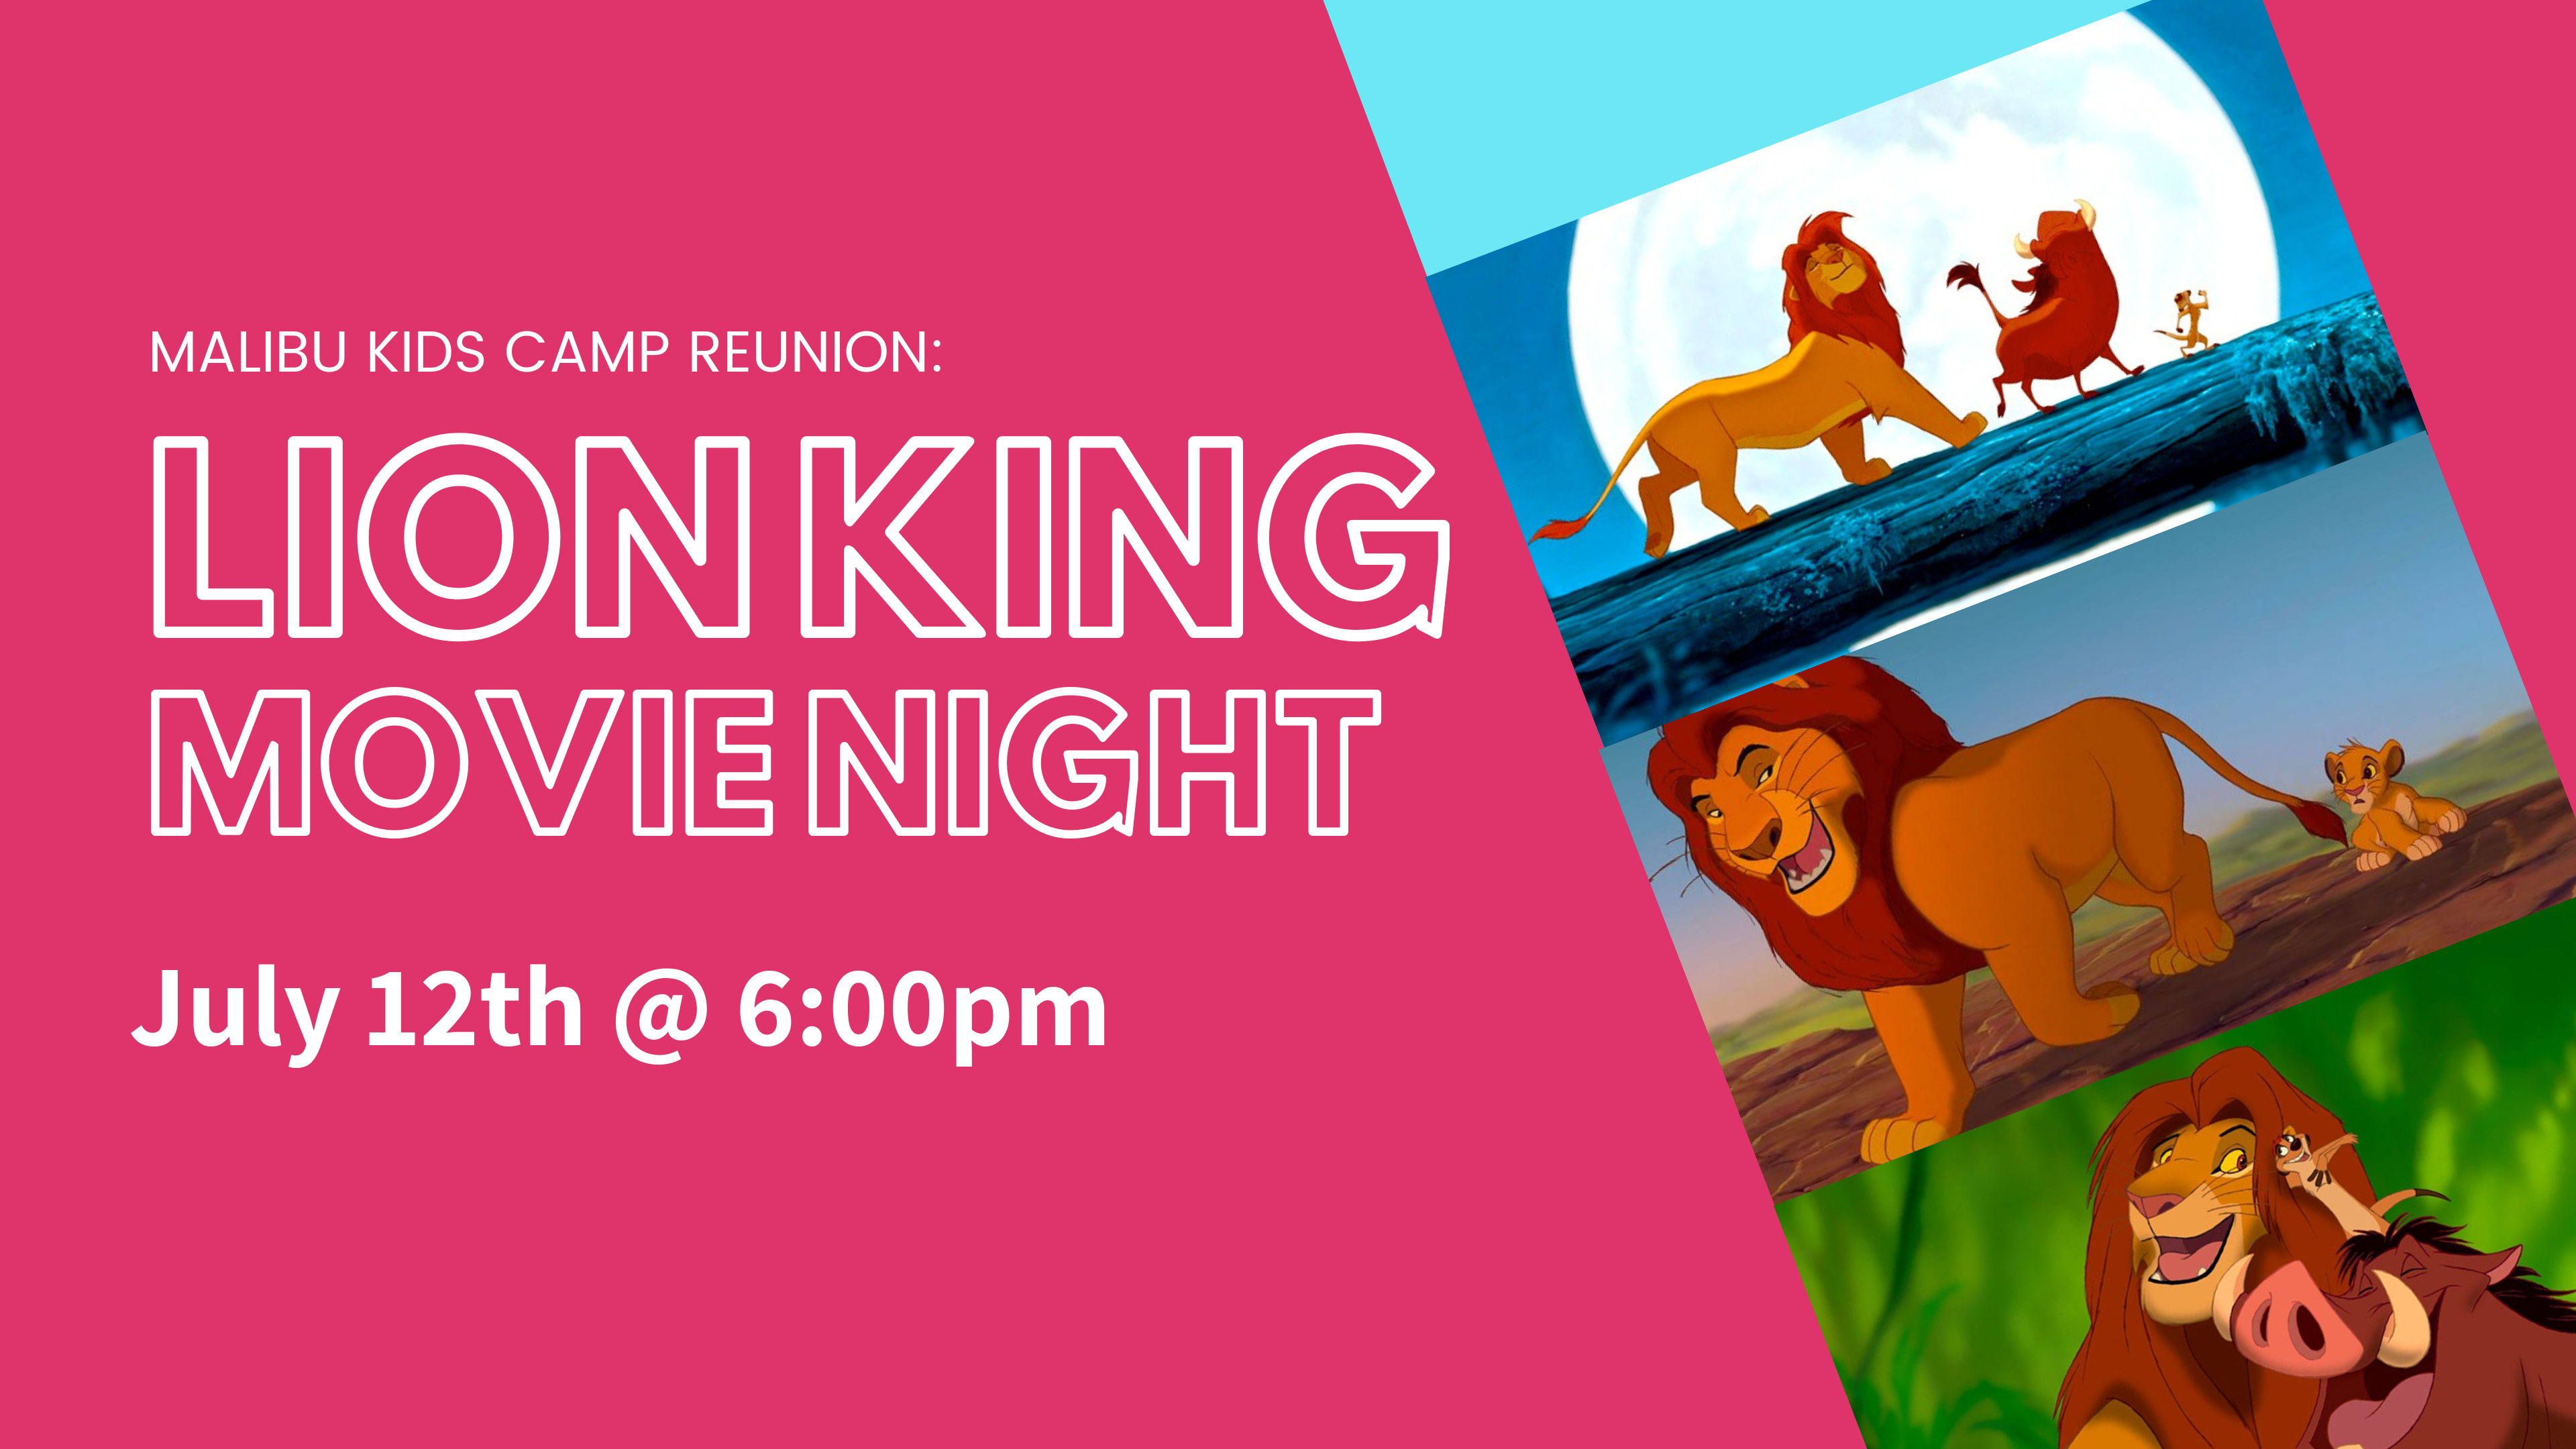 Copy of Lion King Movie Night image